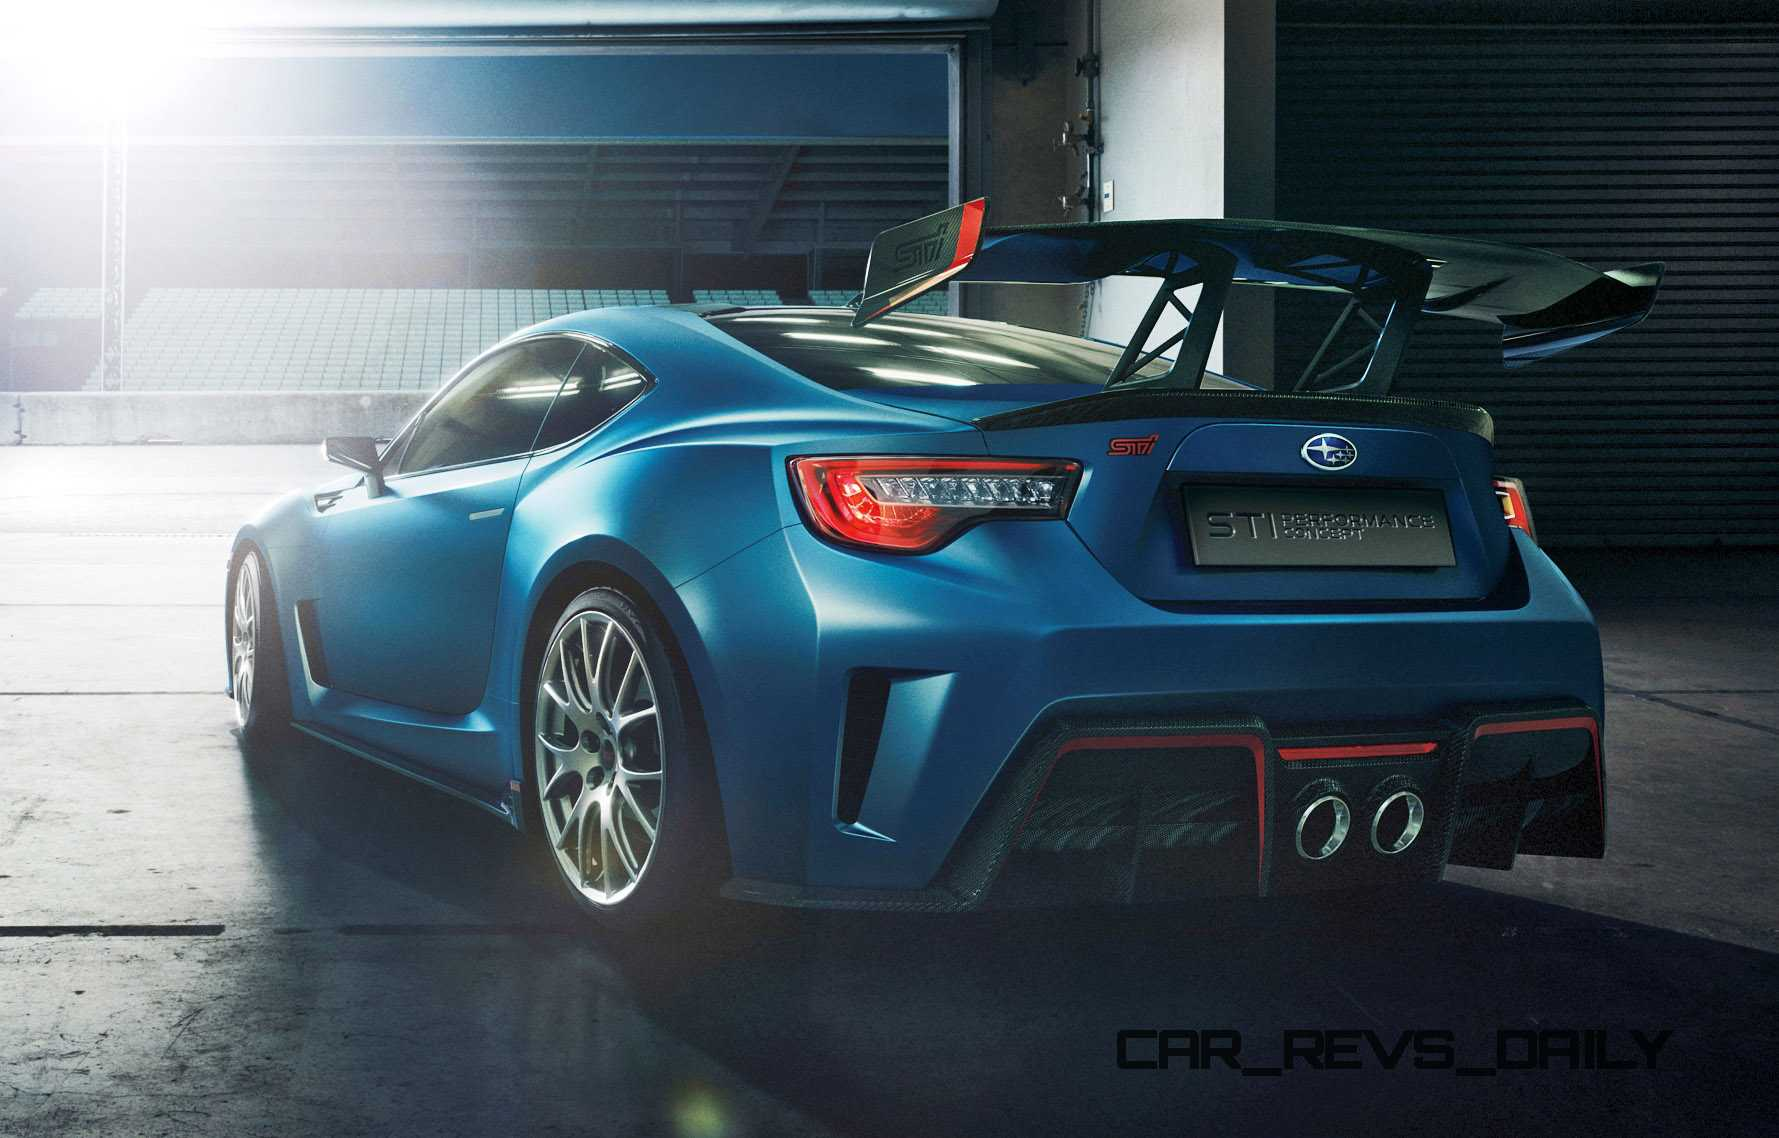 Subaru Brz Sti Concept on Subaru Boxer Engine Performance Enhancements